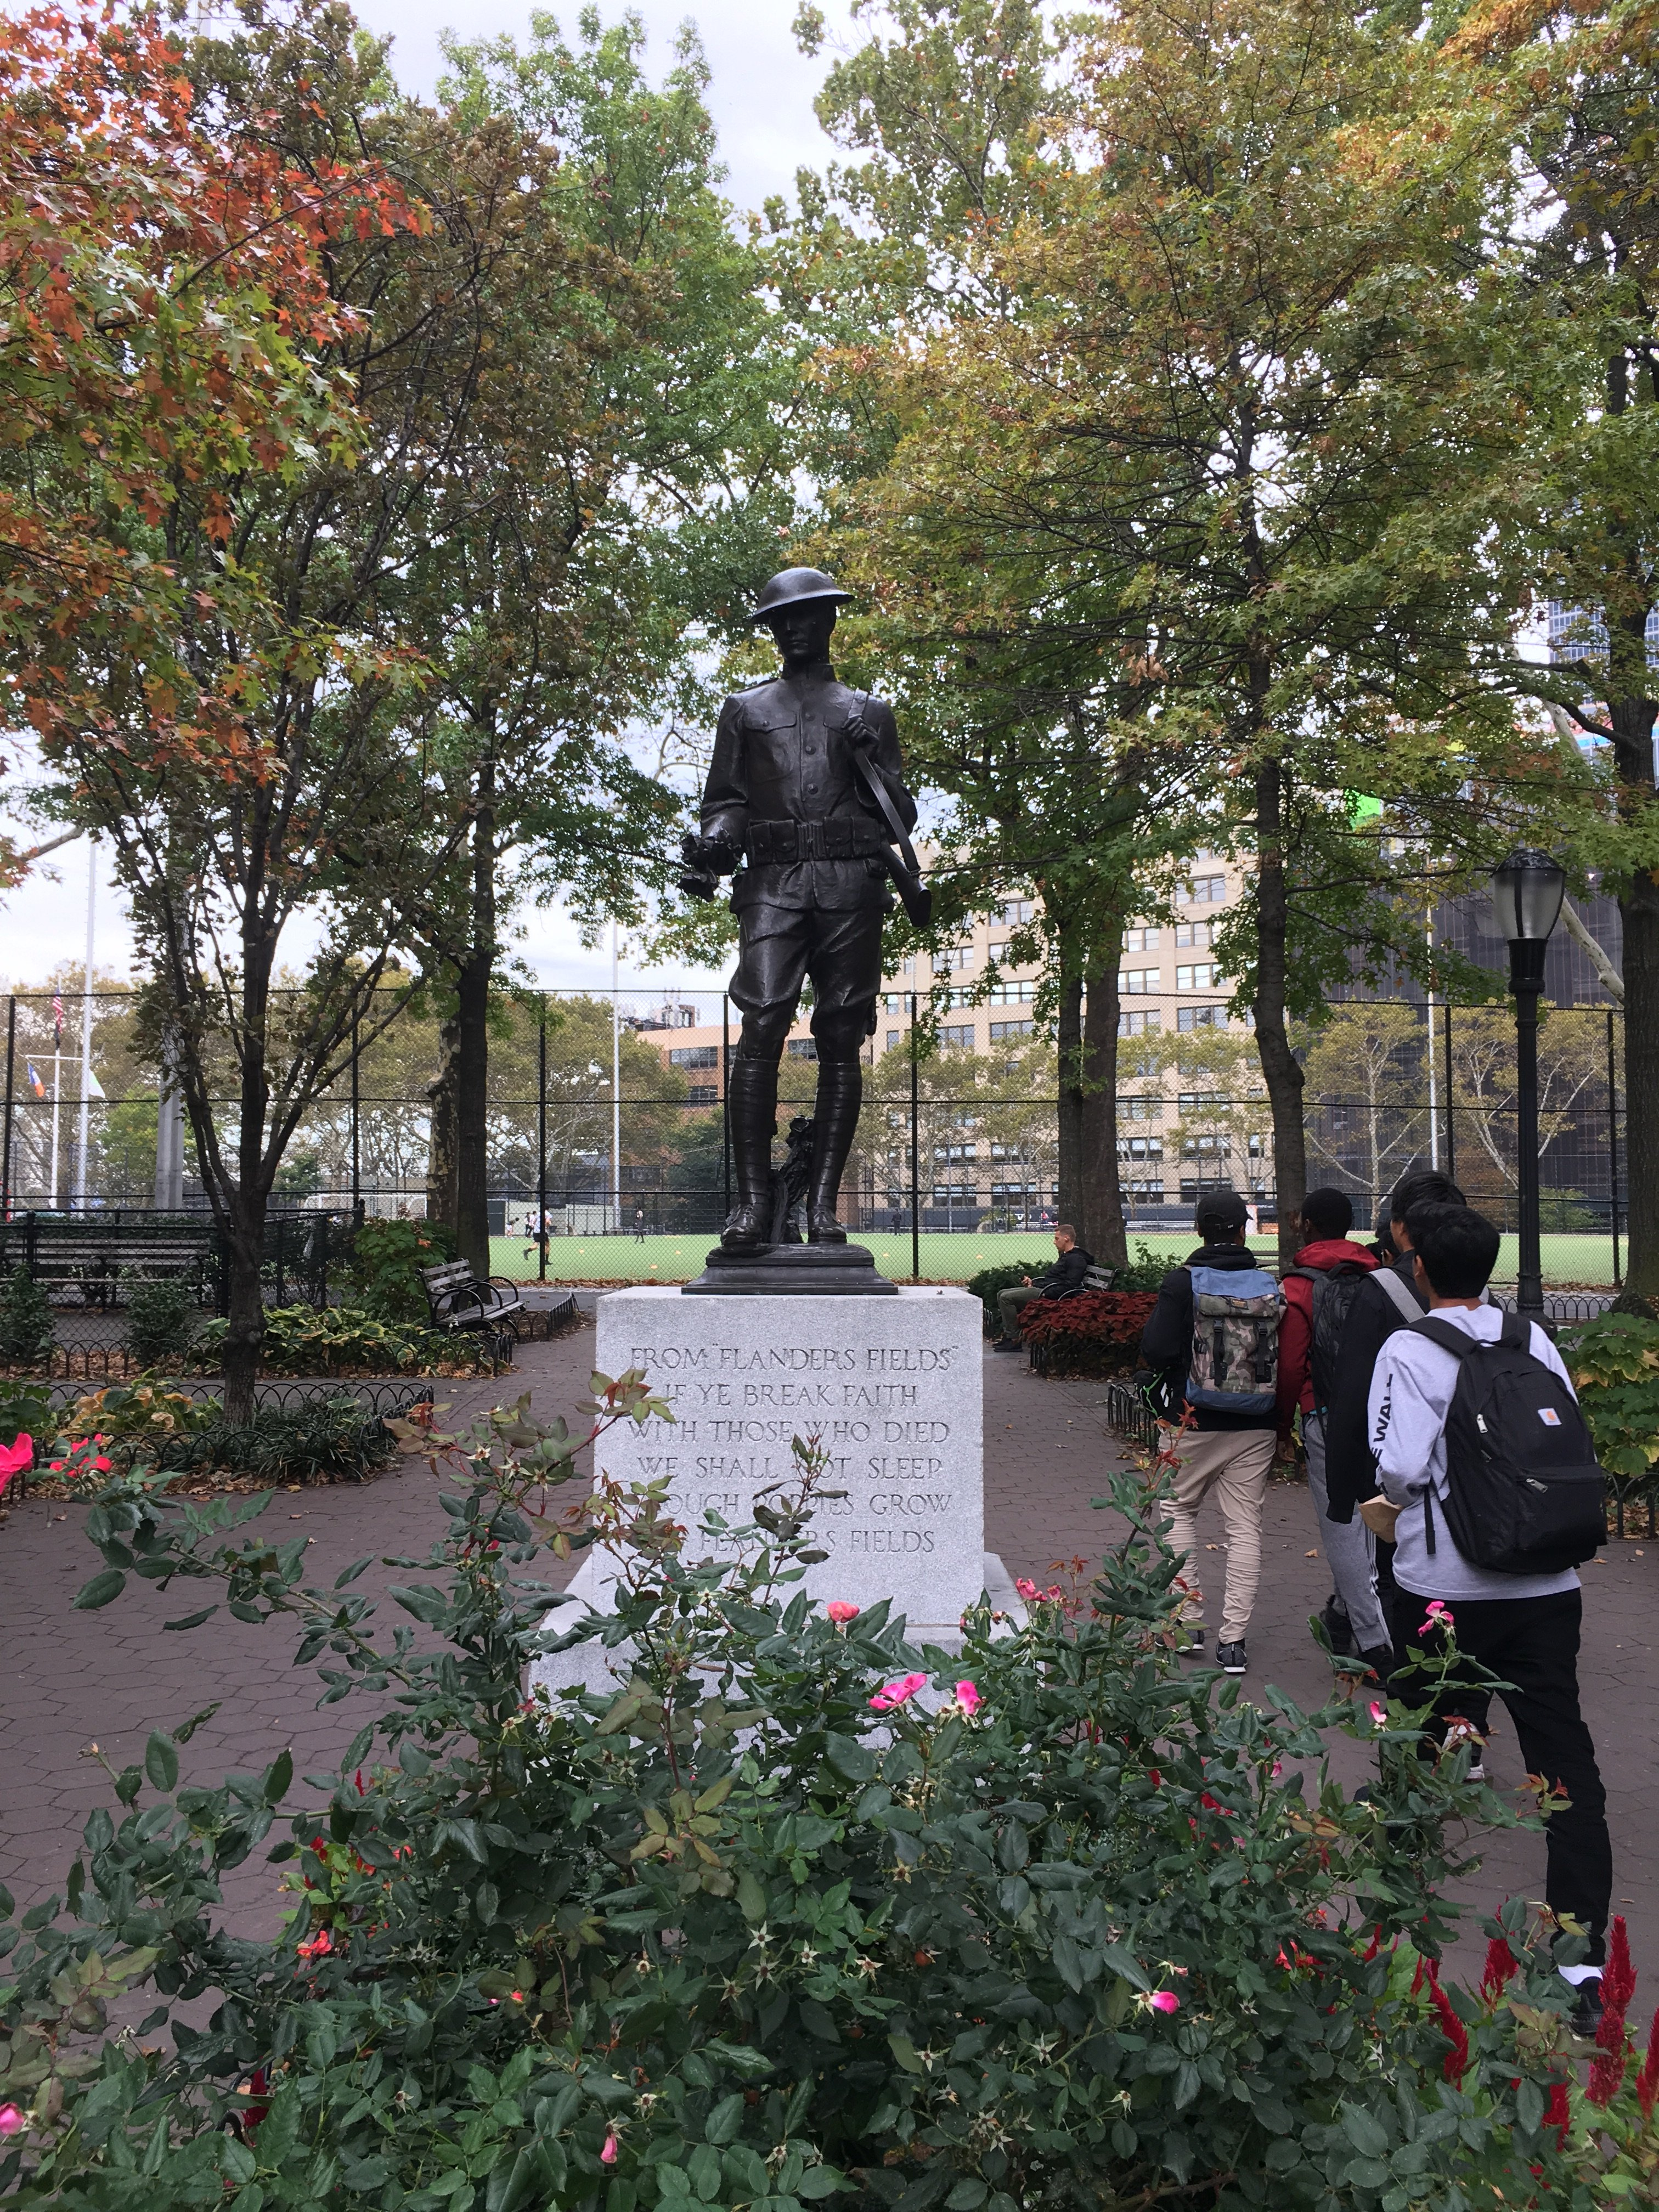 The full doughboy statue, view from the entrance at 52nd and 11th.